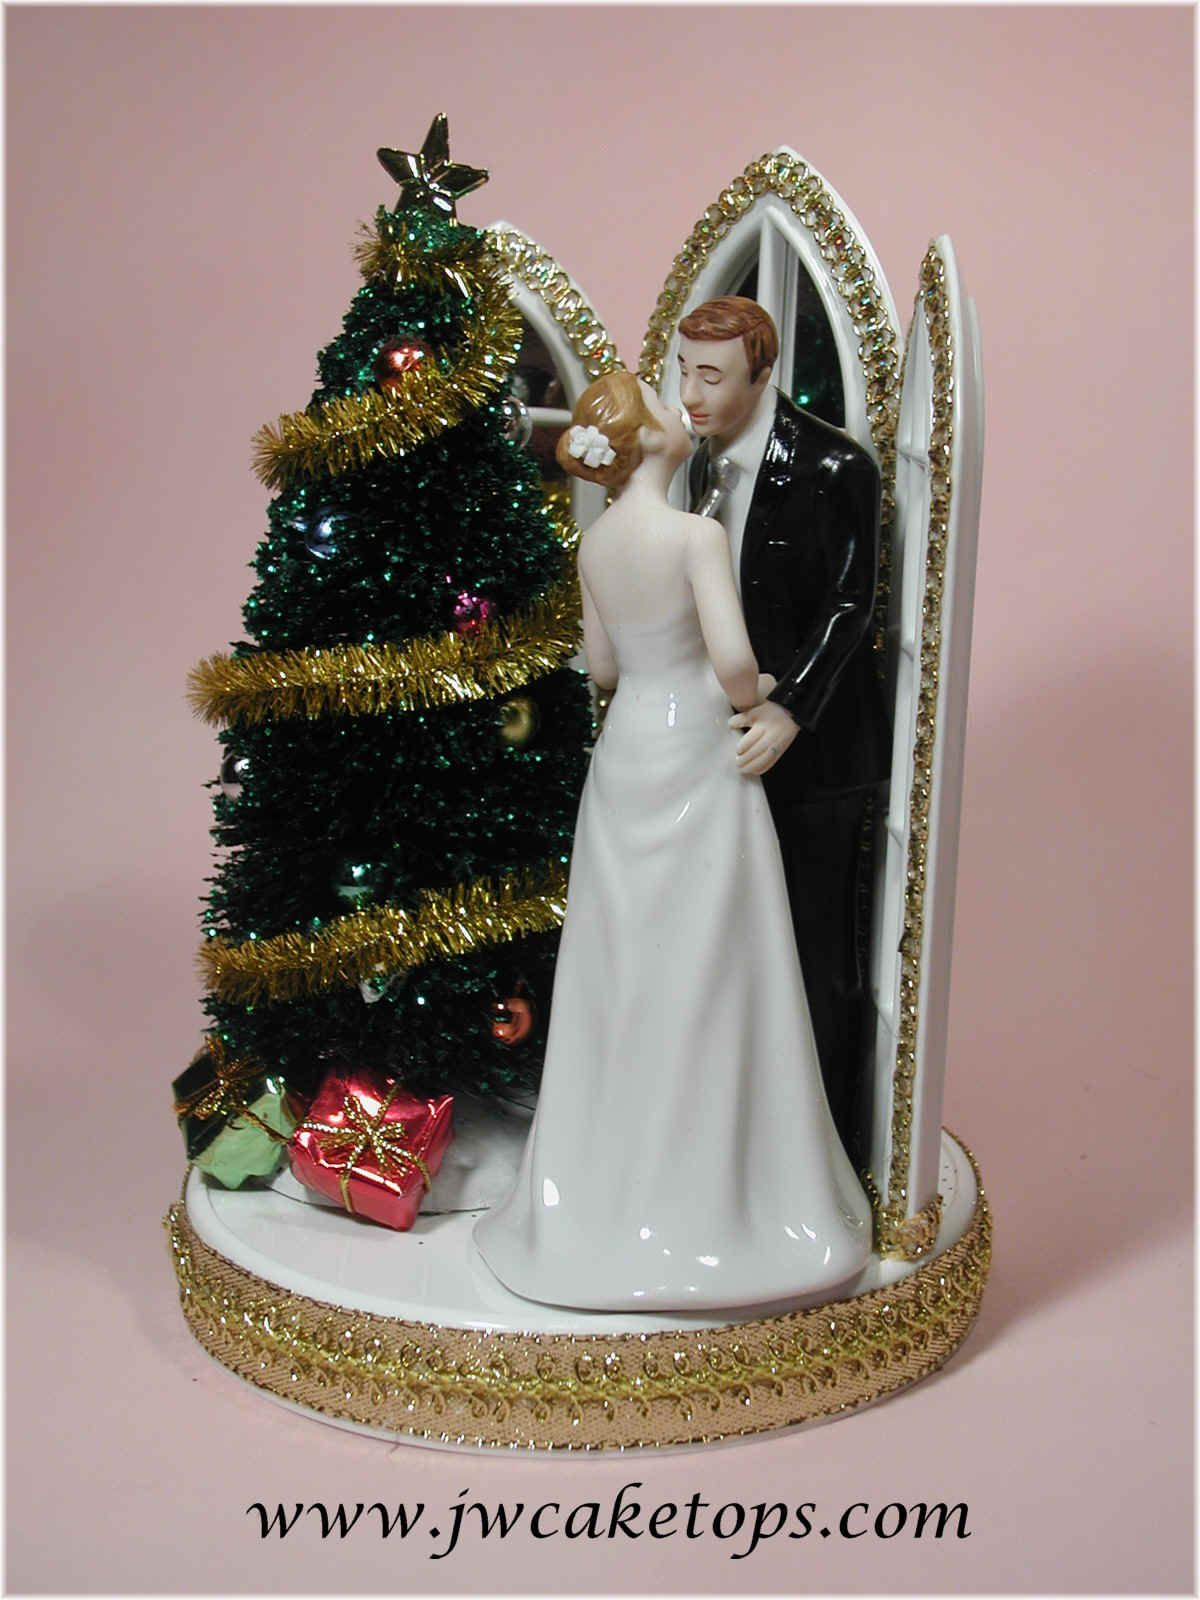 Christmas Wedding Cake Toppers.Pin On Wedding Cake Toppers